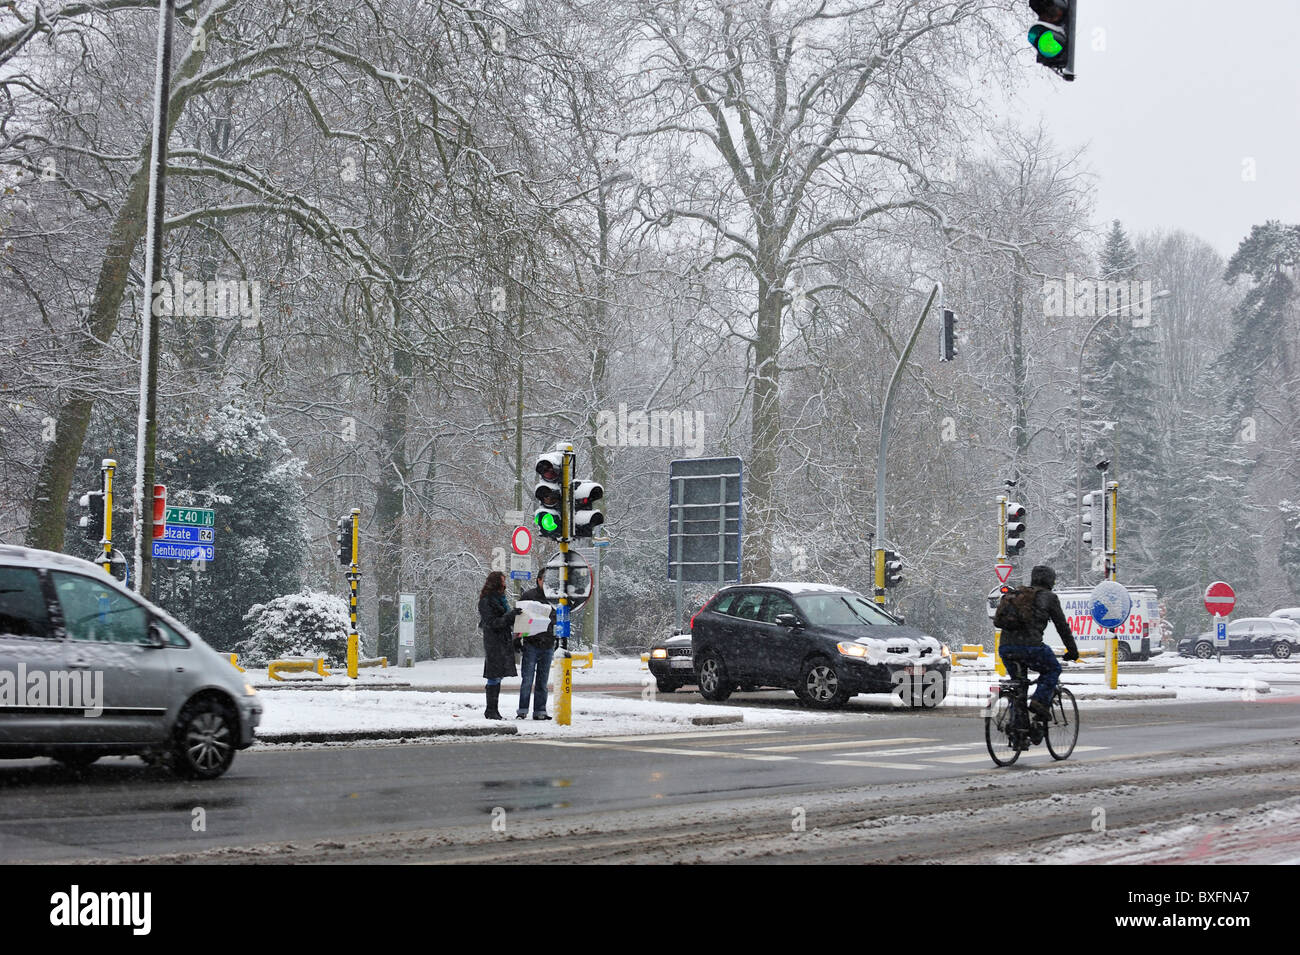 Cars and cyclist driving on slippery road in winter in the snow, Ghent Belgium - Stock Image